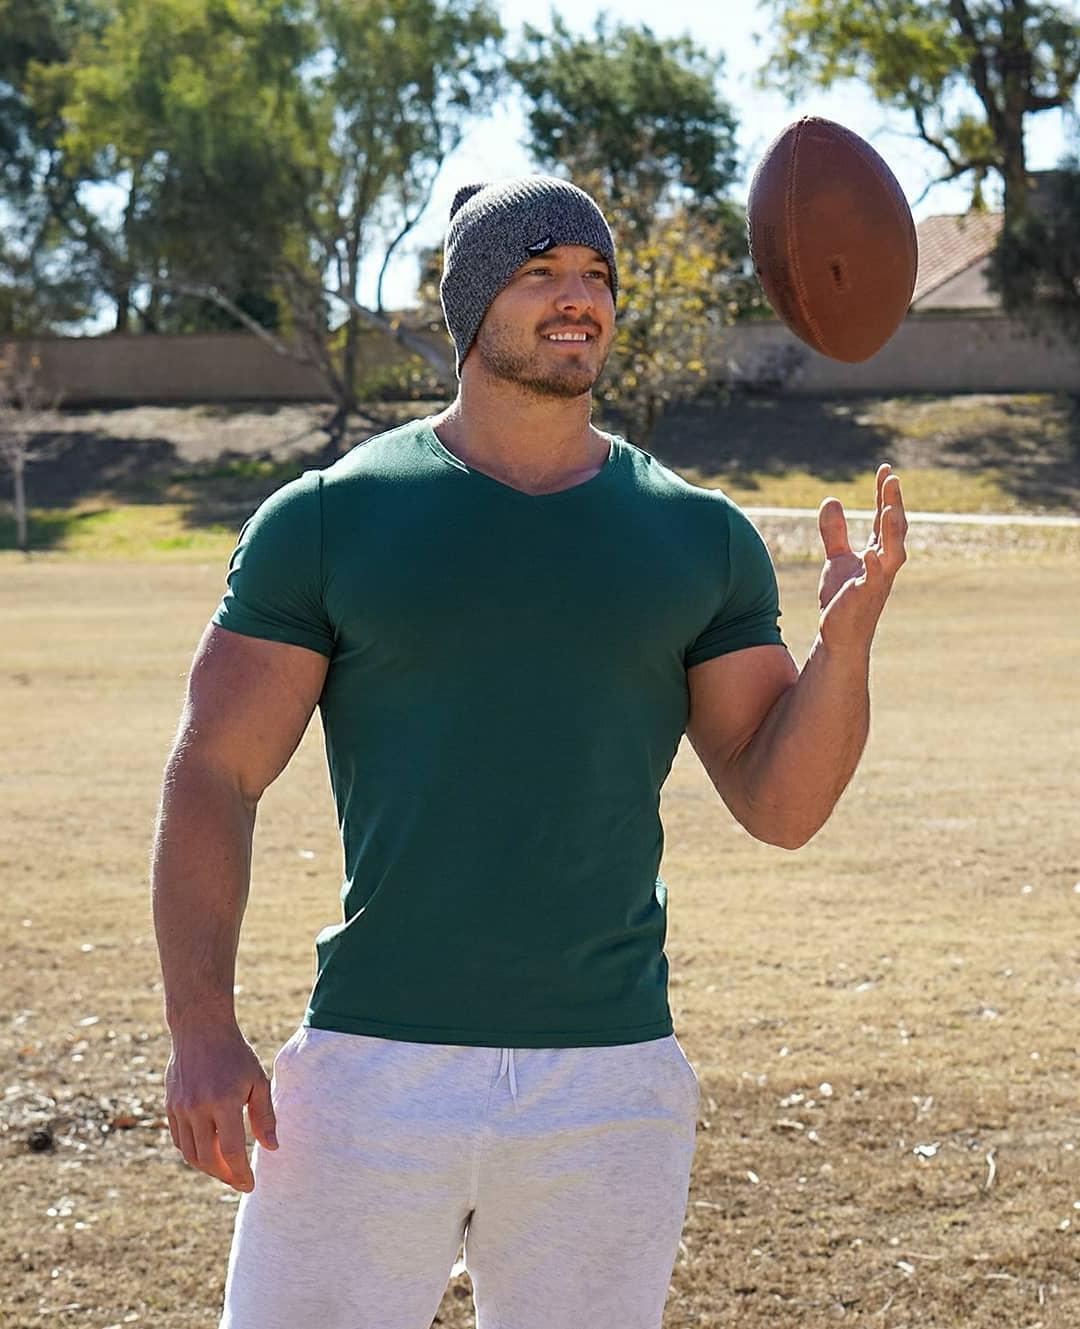 smiling-beefcake-hunk-rugby-ball